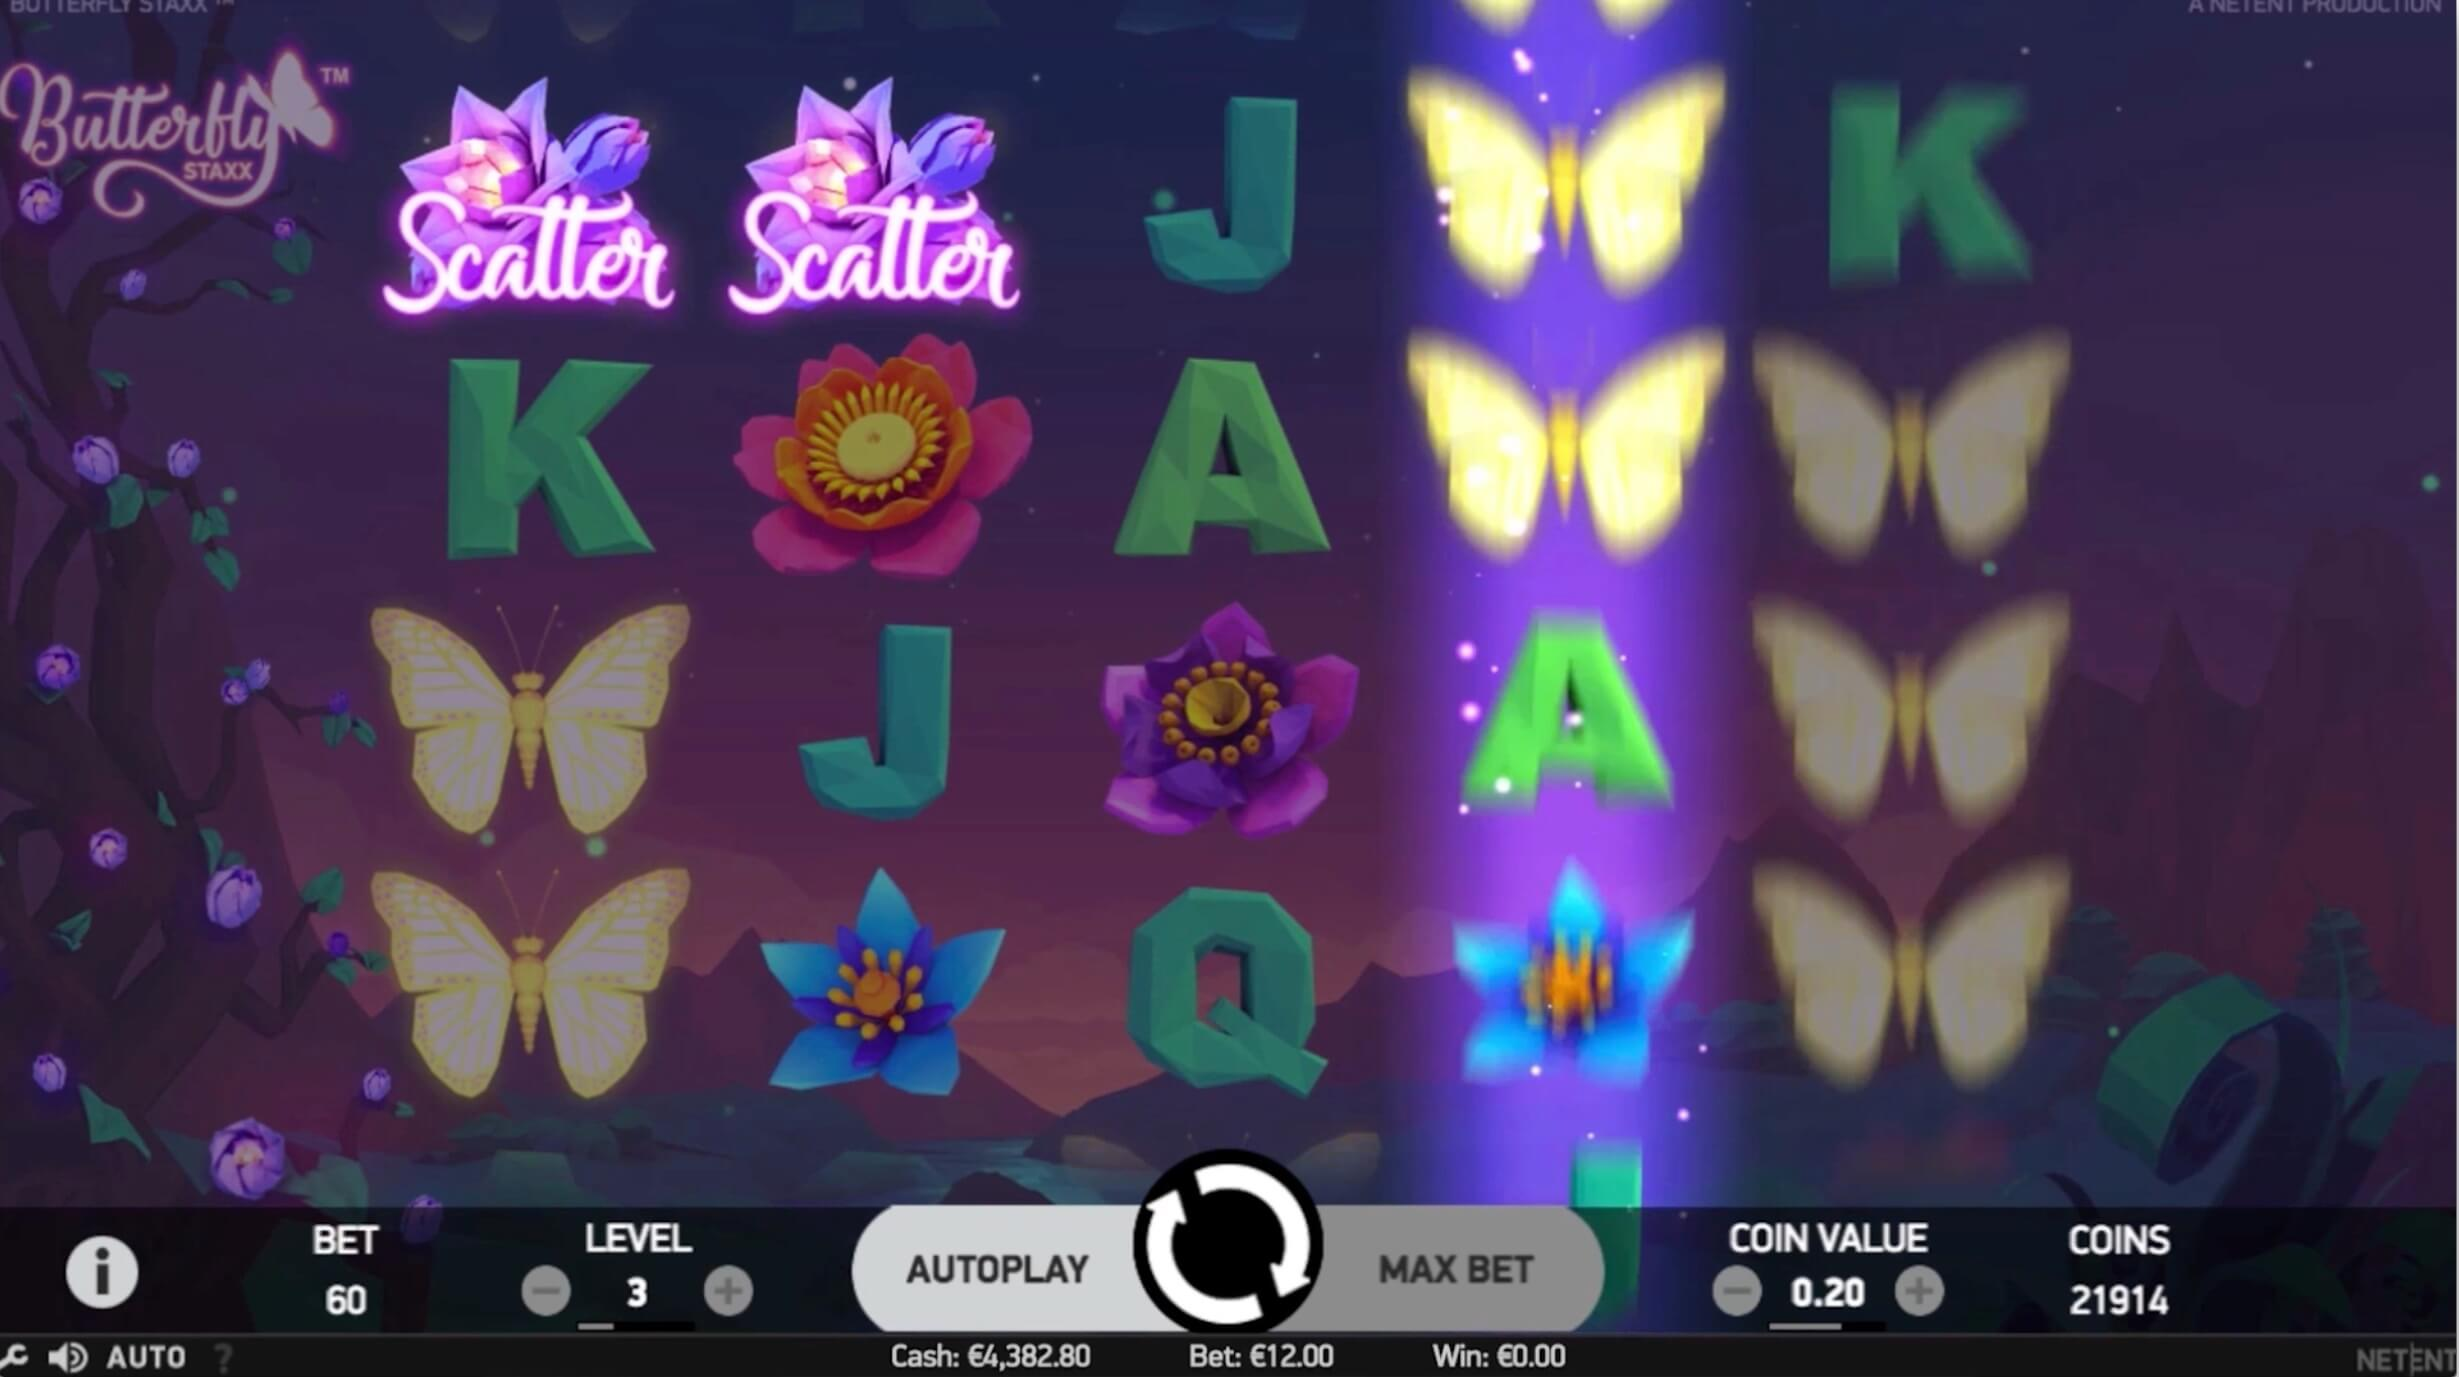 butterlfy staxx slot screenshot in action